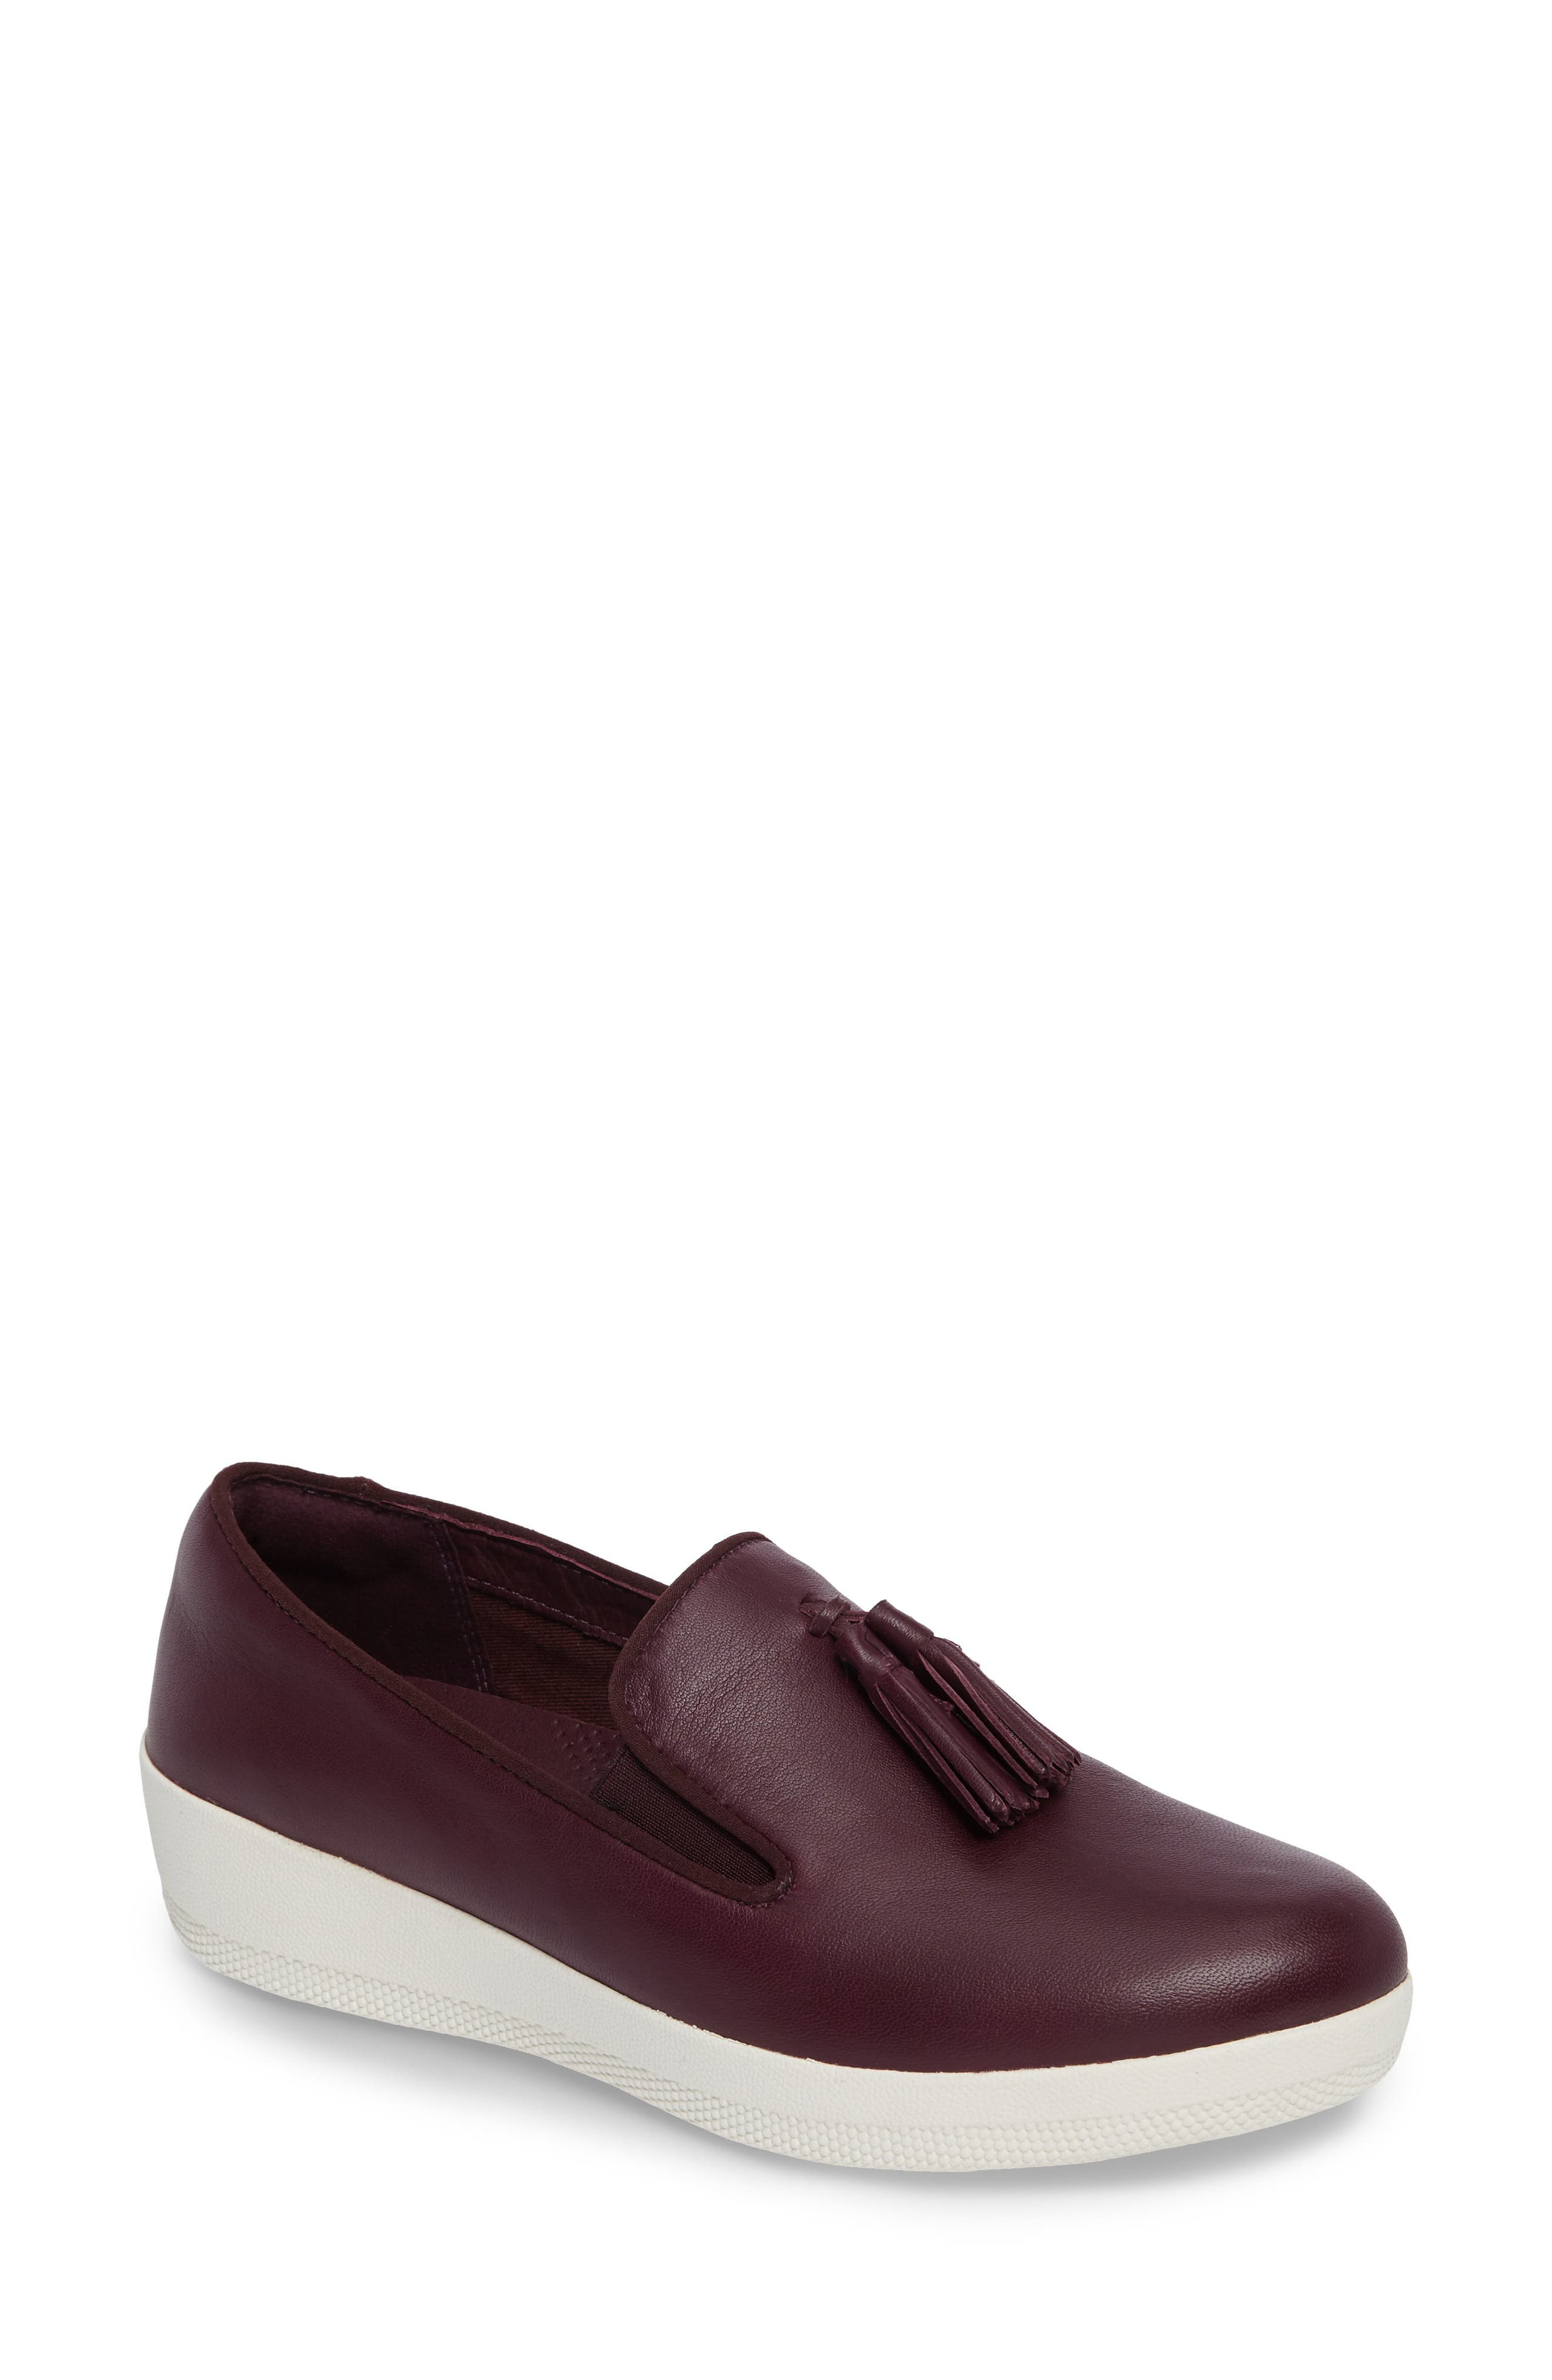 Tassle Superskate Wedge Sneaker,                             Main thumbnail 1, color,                             Deep Plum Leather